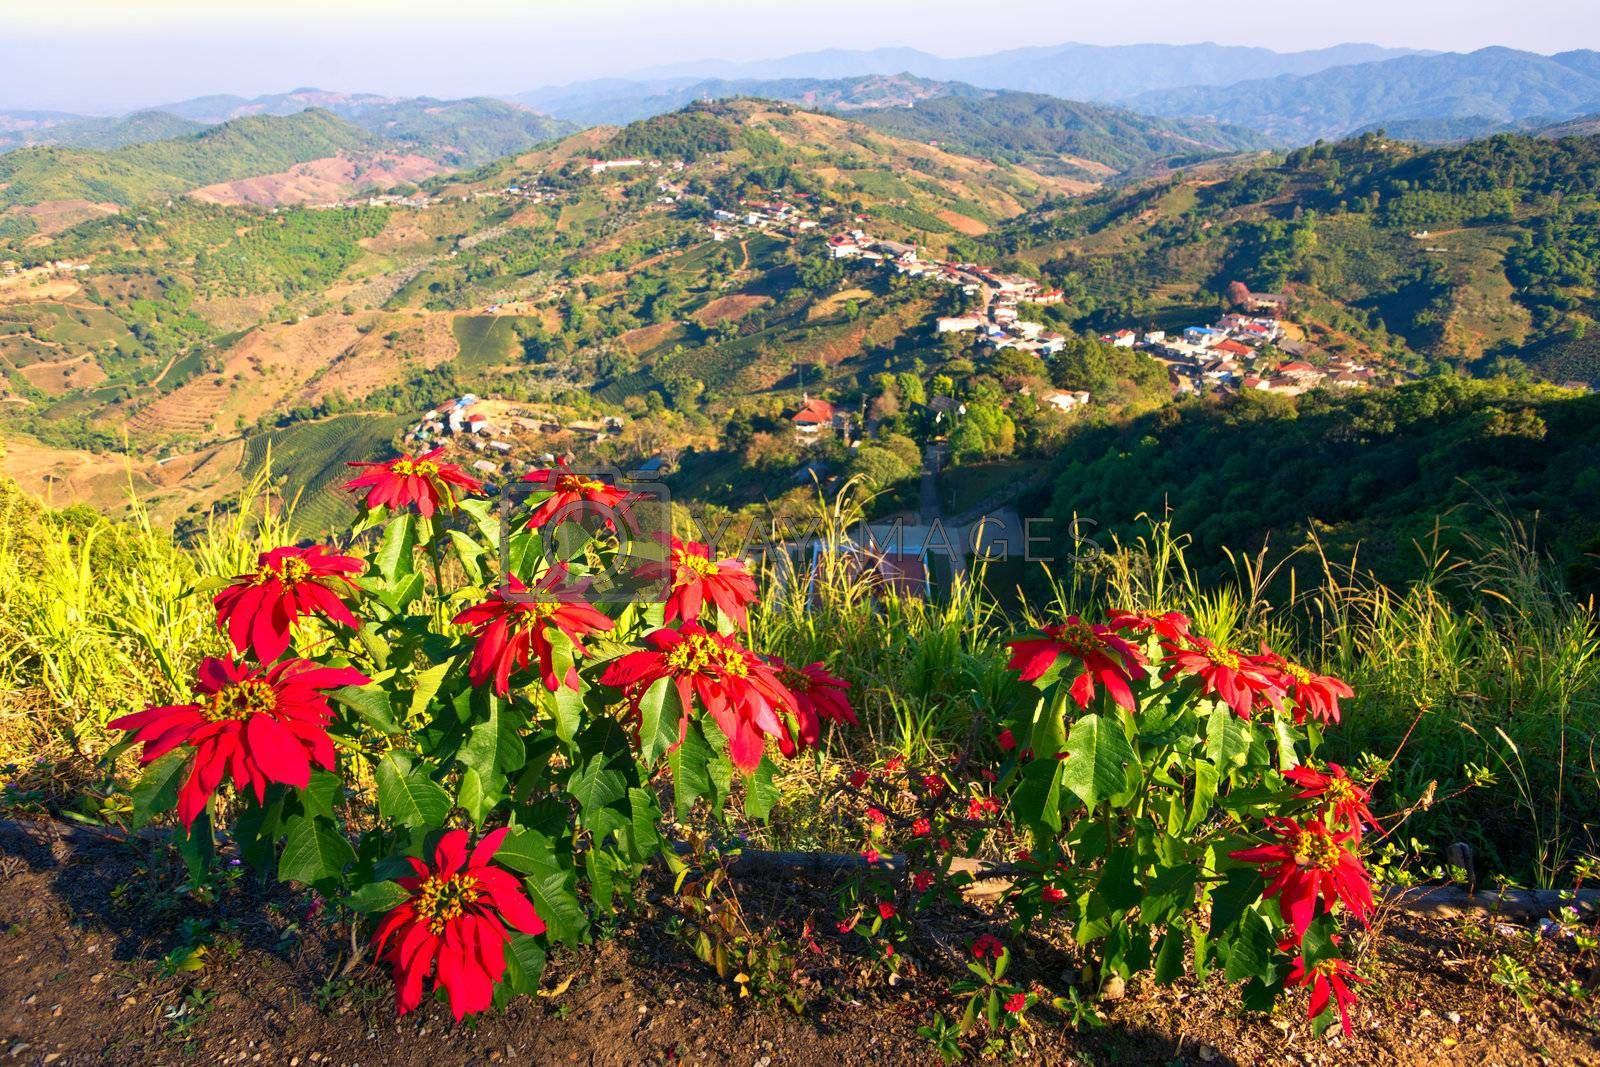 Top view of Mae Salong village in the mountains, Chiang Mai province, Thailand